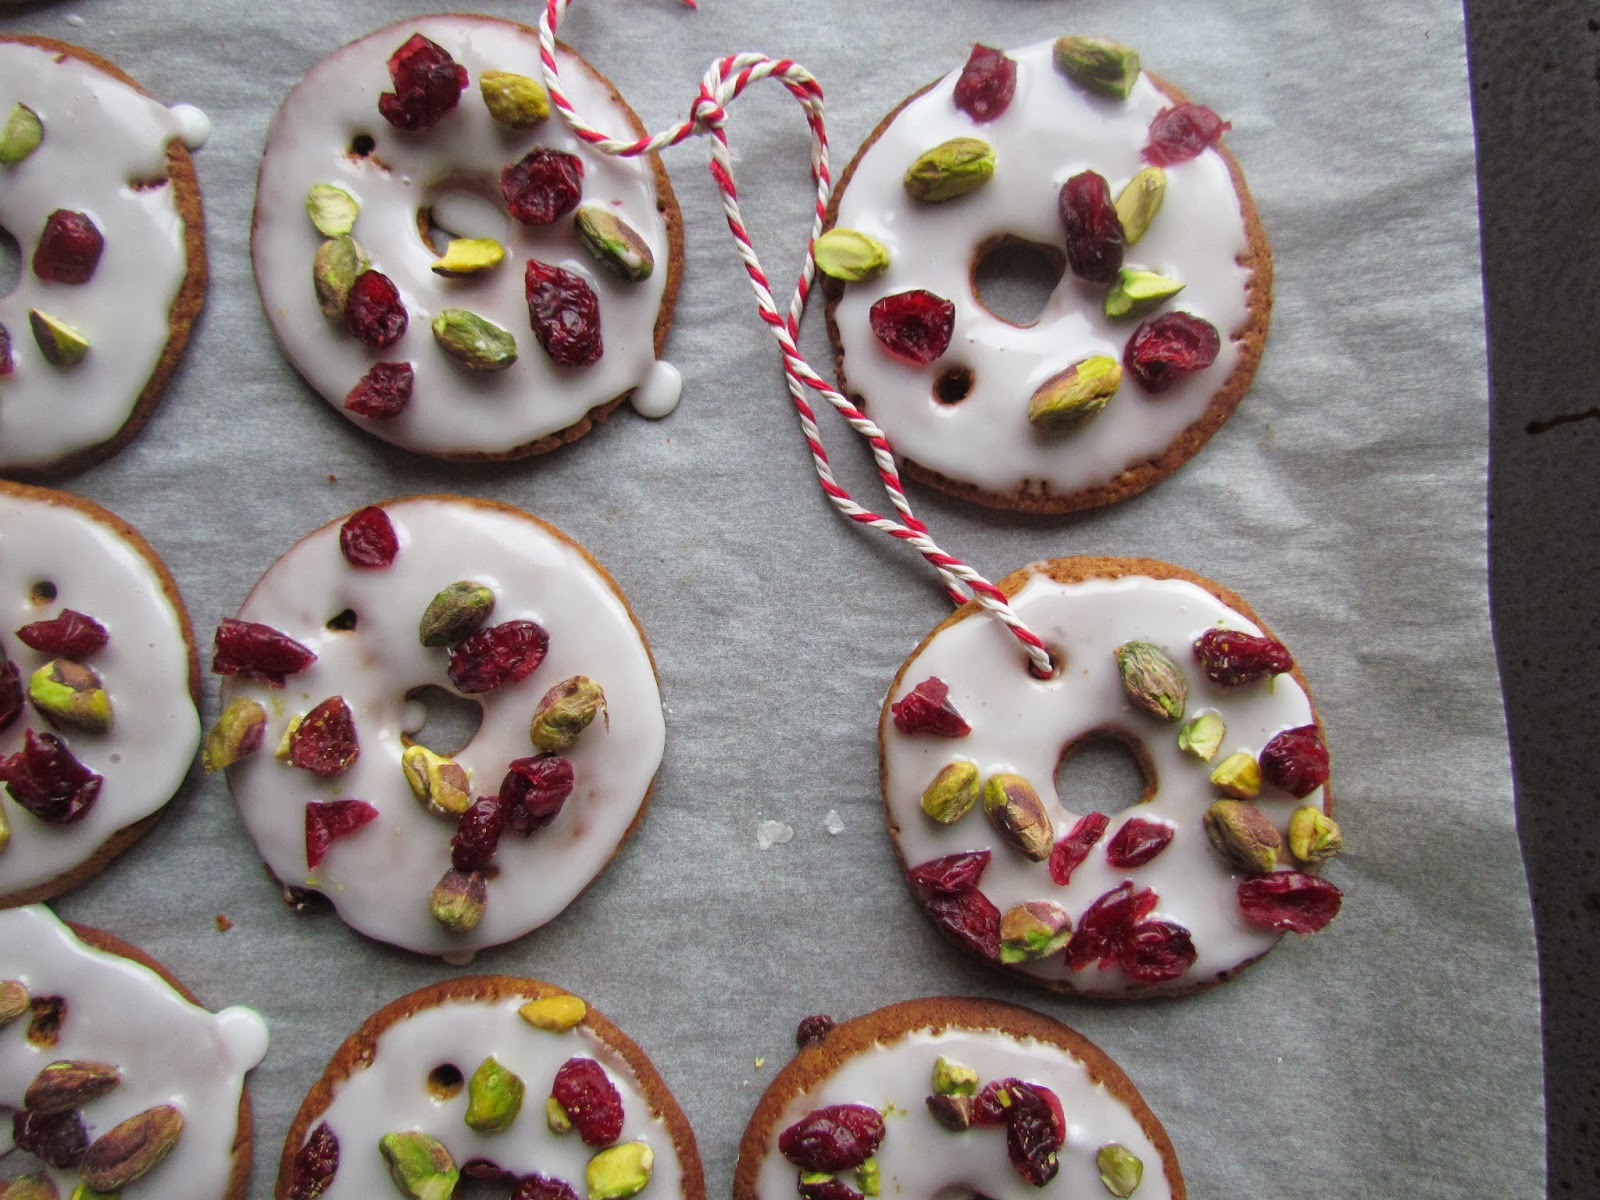 Holly S Pantry Ginger Bread Christmas Wreath Biscuits